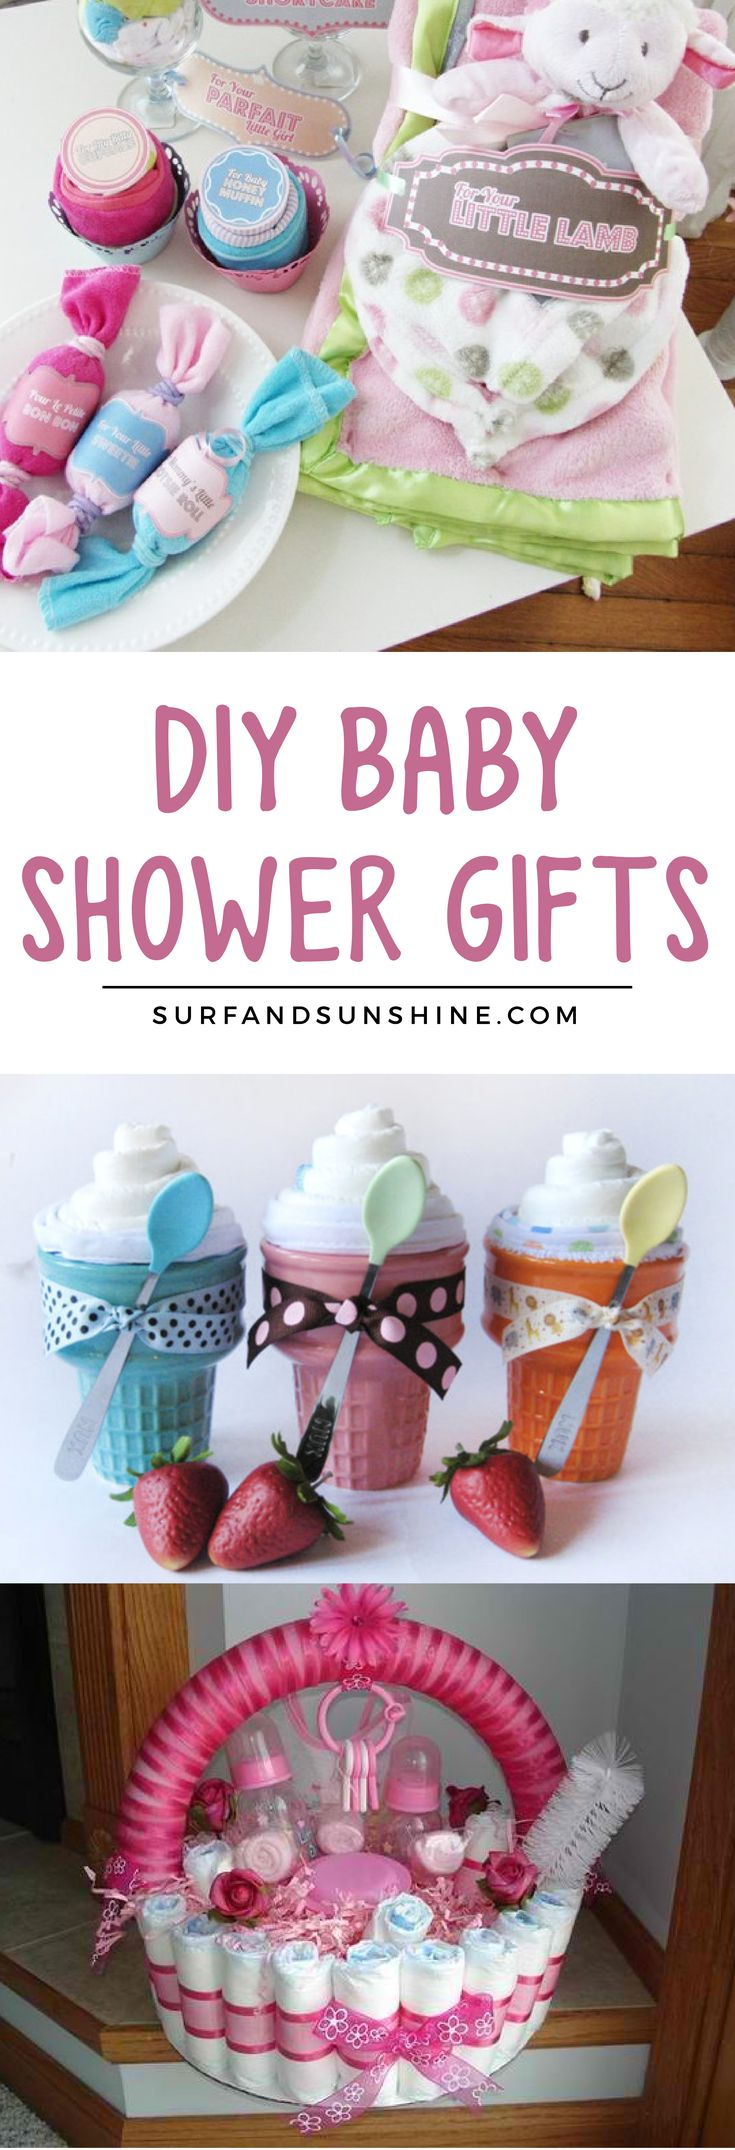 6 Unique DIY Baby Shower Gifts for Boys and Girls via @jeanabeena